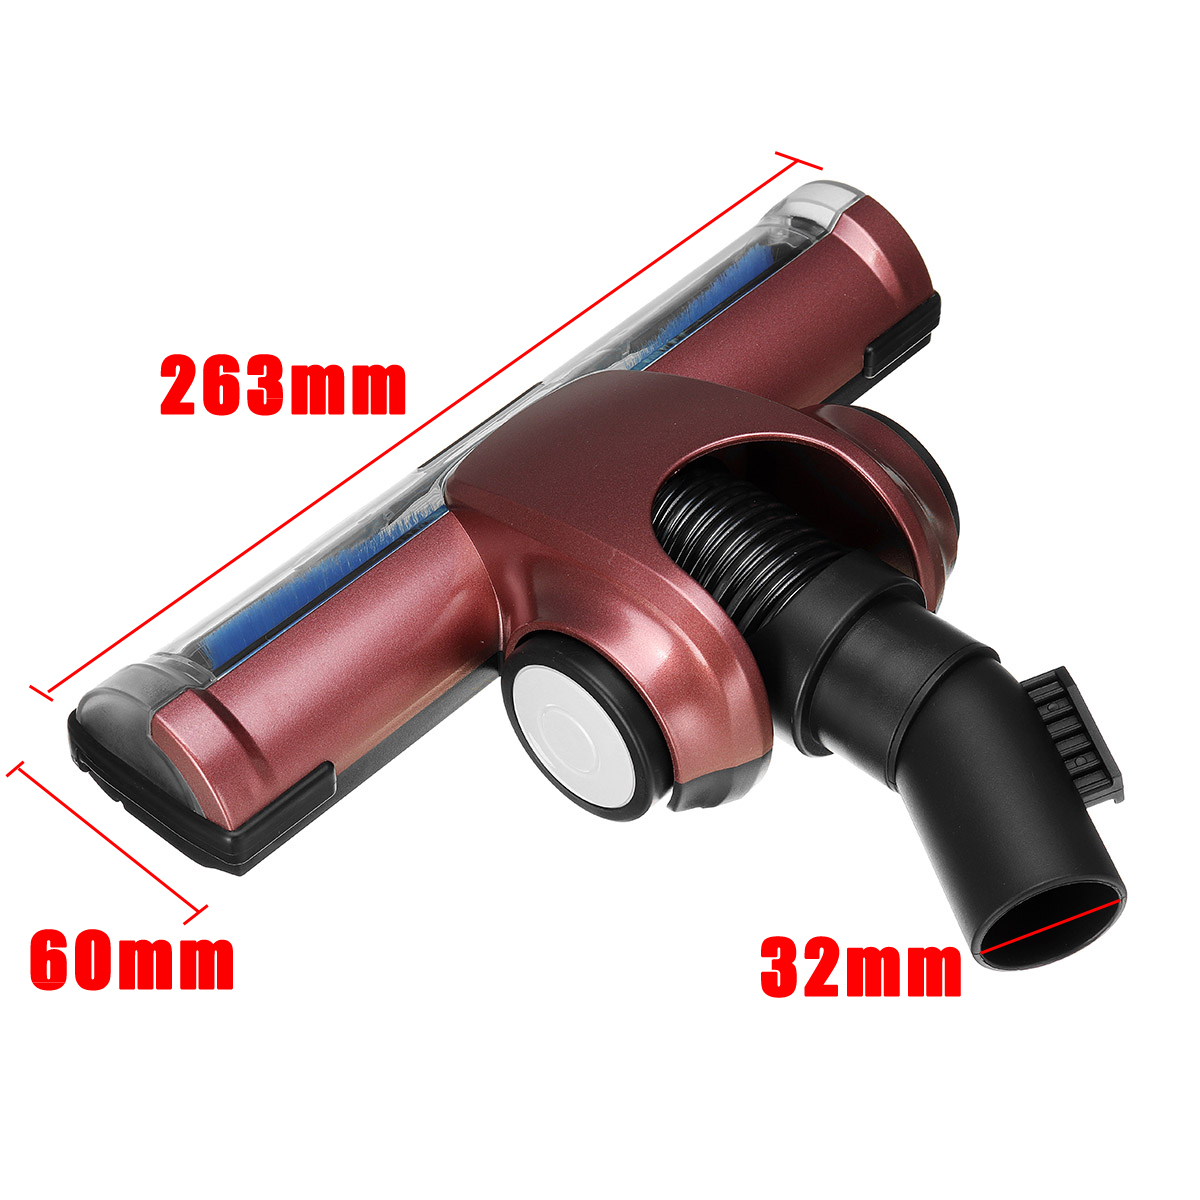 32mm Turbine Floor Cleaner Head Vacuum Brush For Dyson